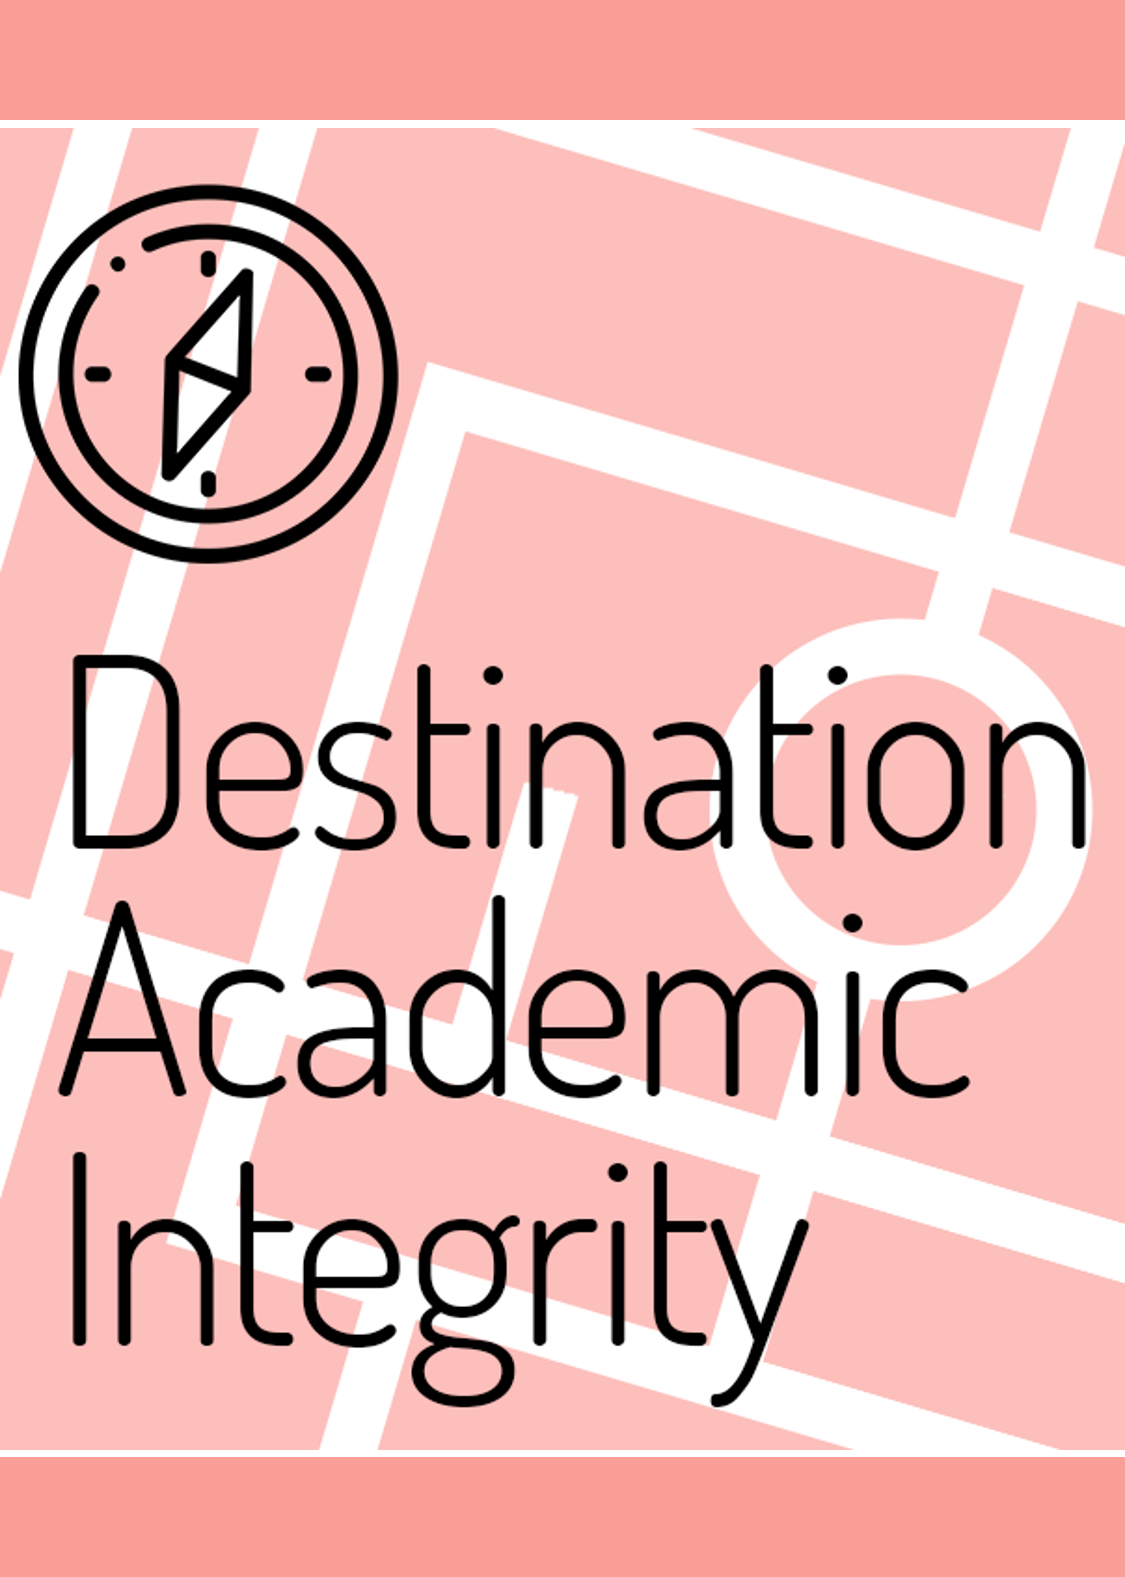 Destination Academic Integrity (cover image)